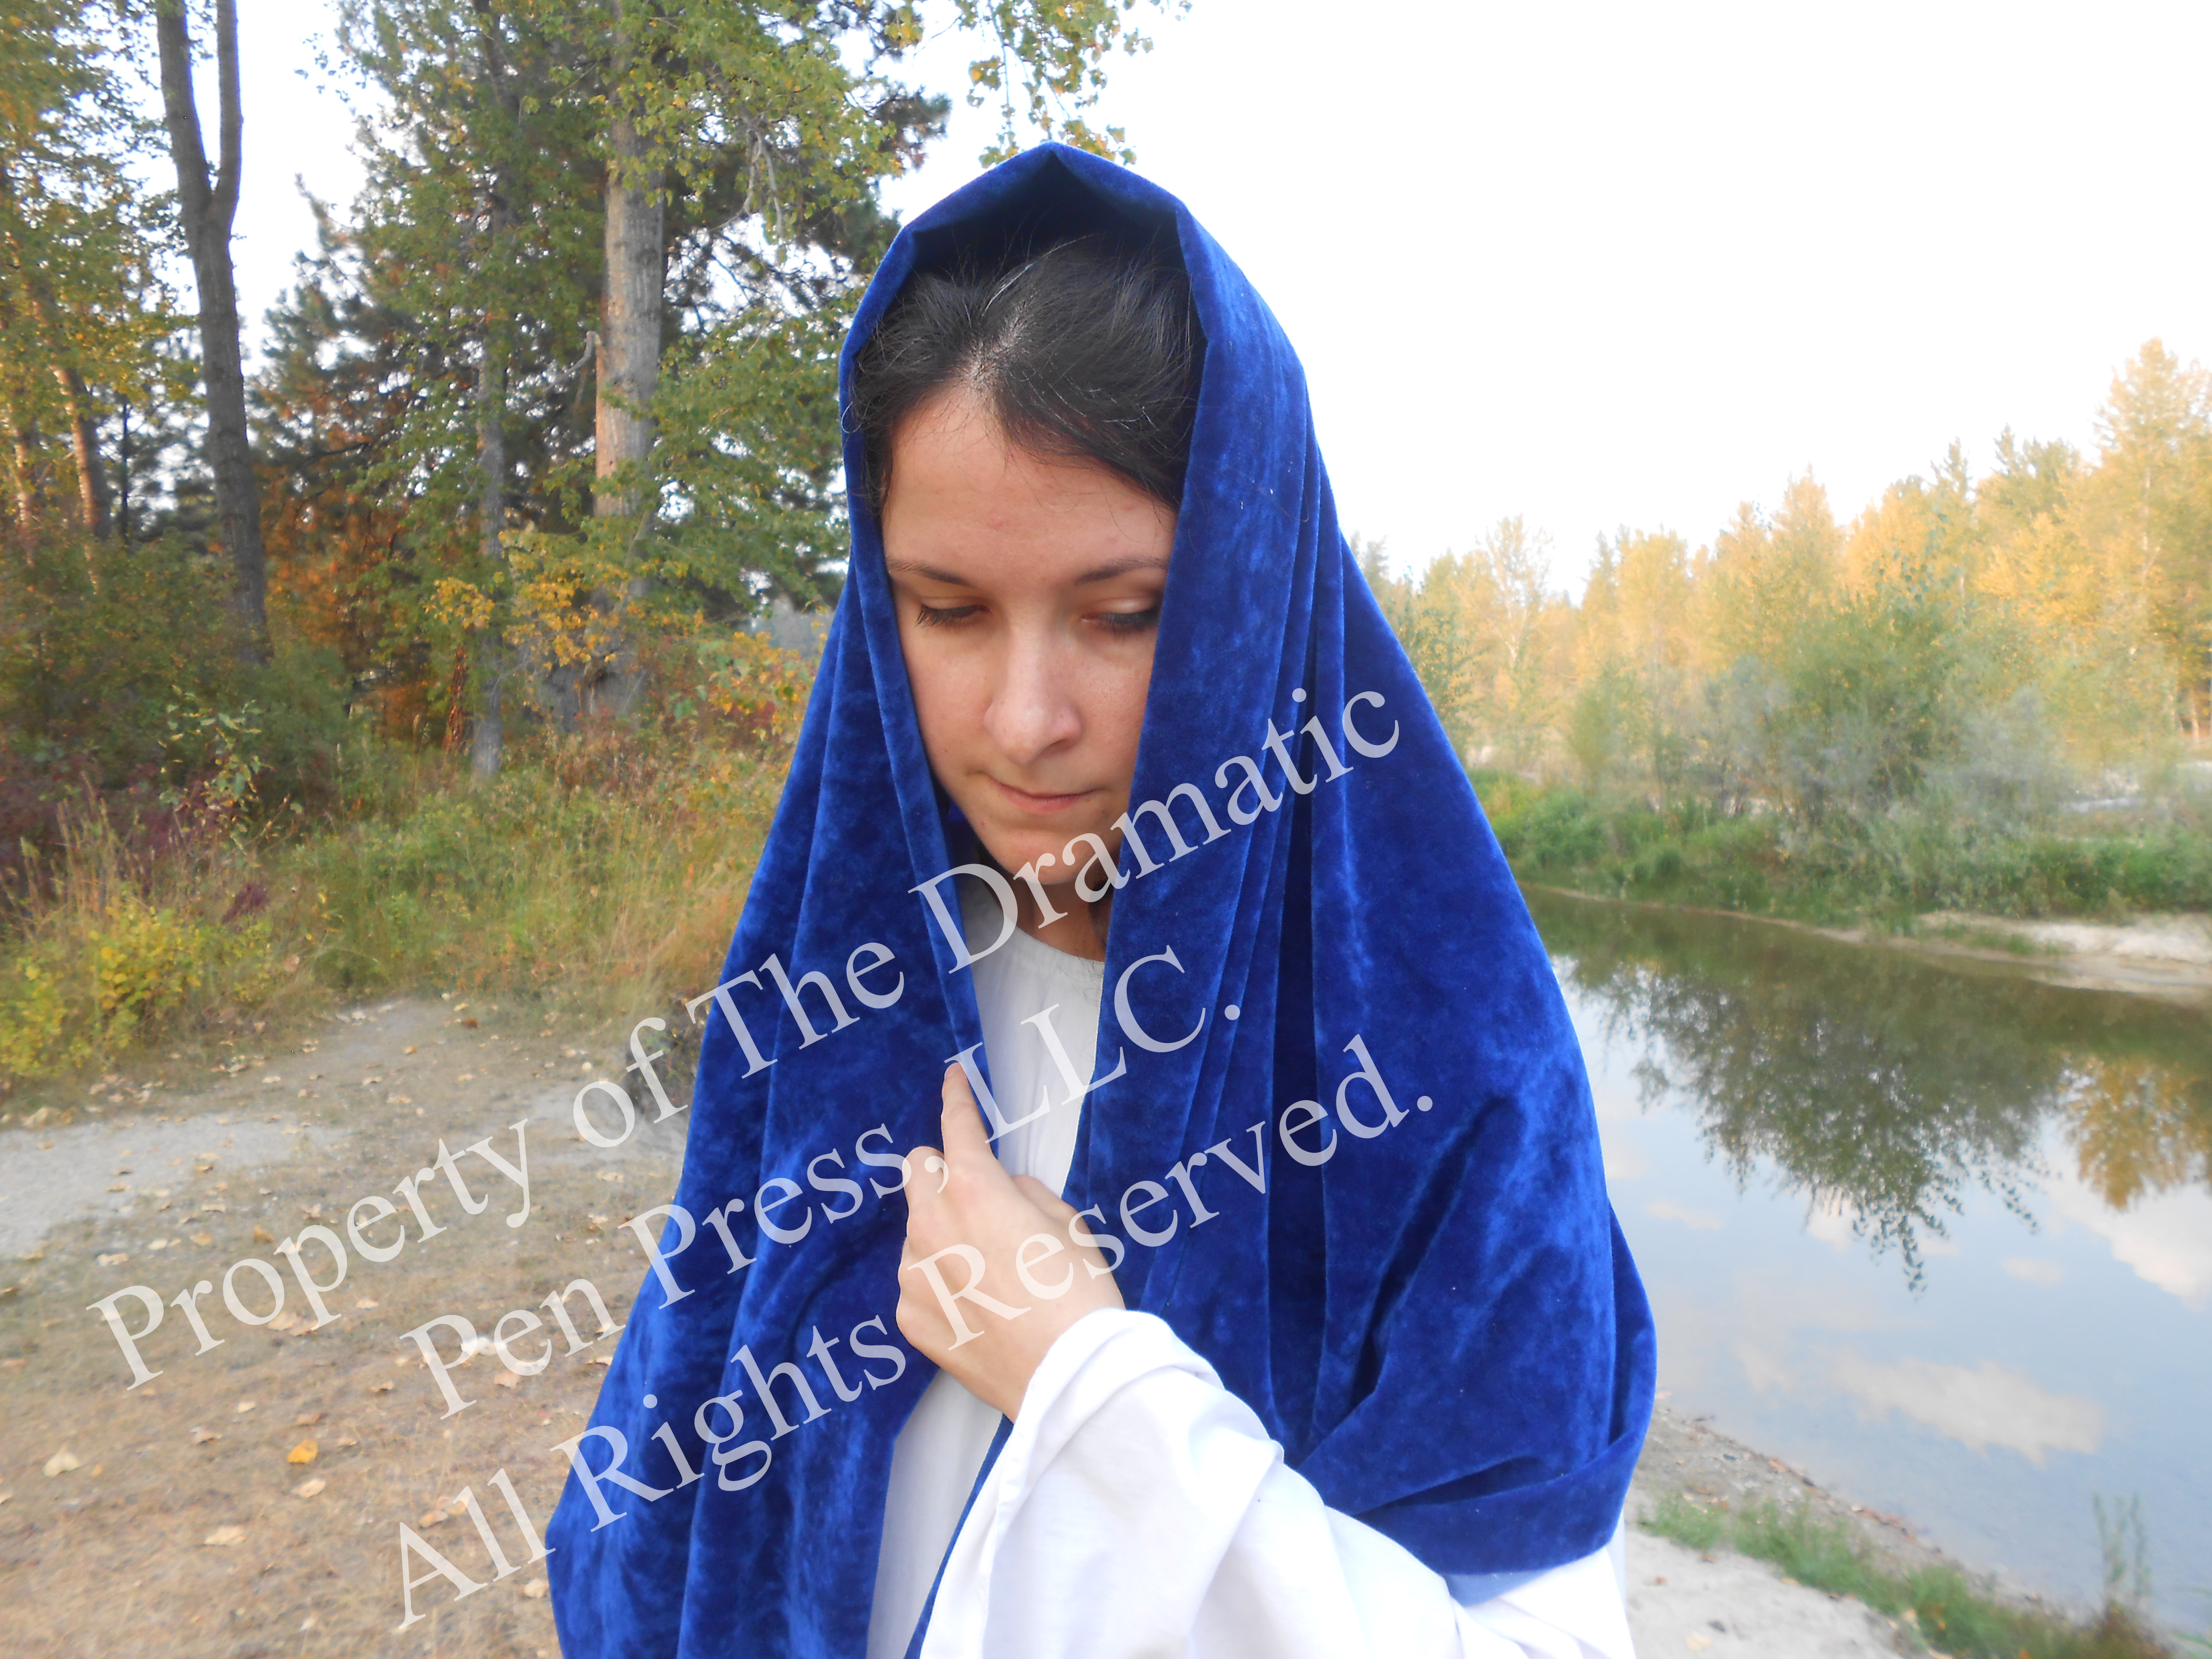 Biblical Woman Looking Down by River